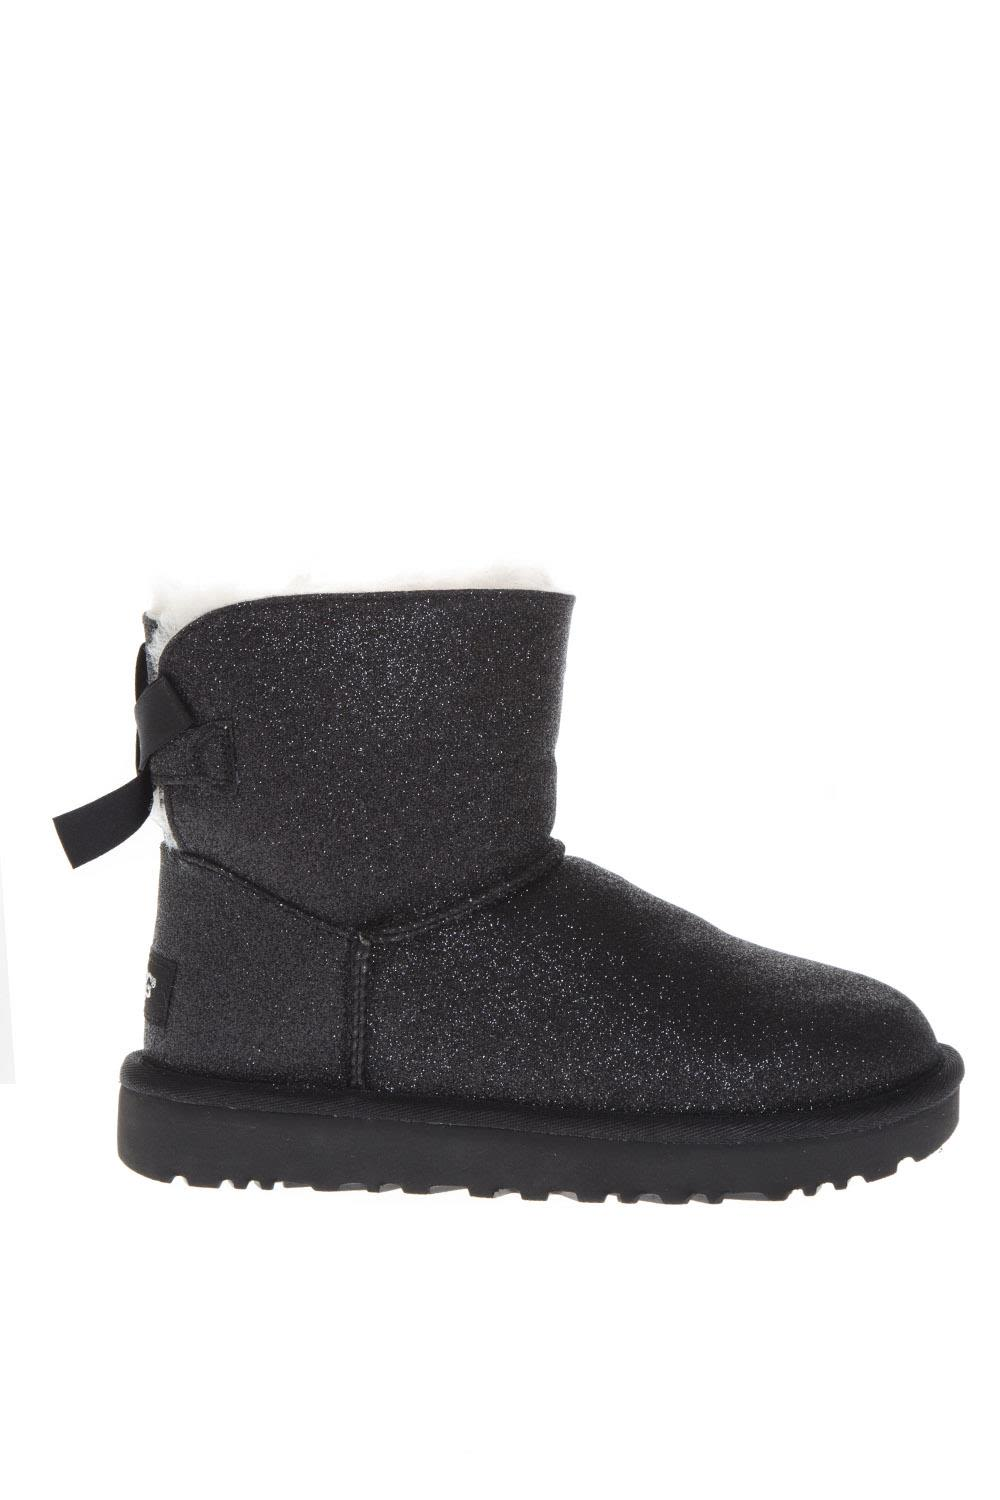 UGG Black Sheep Leather Mini Bailey Sparkle Boots